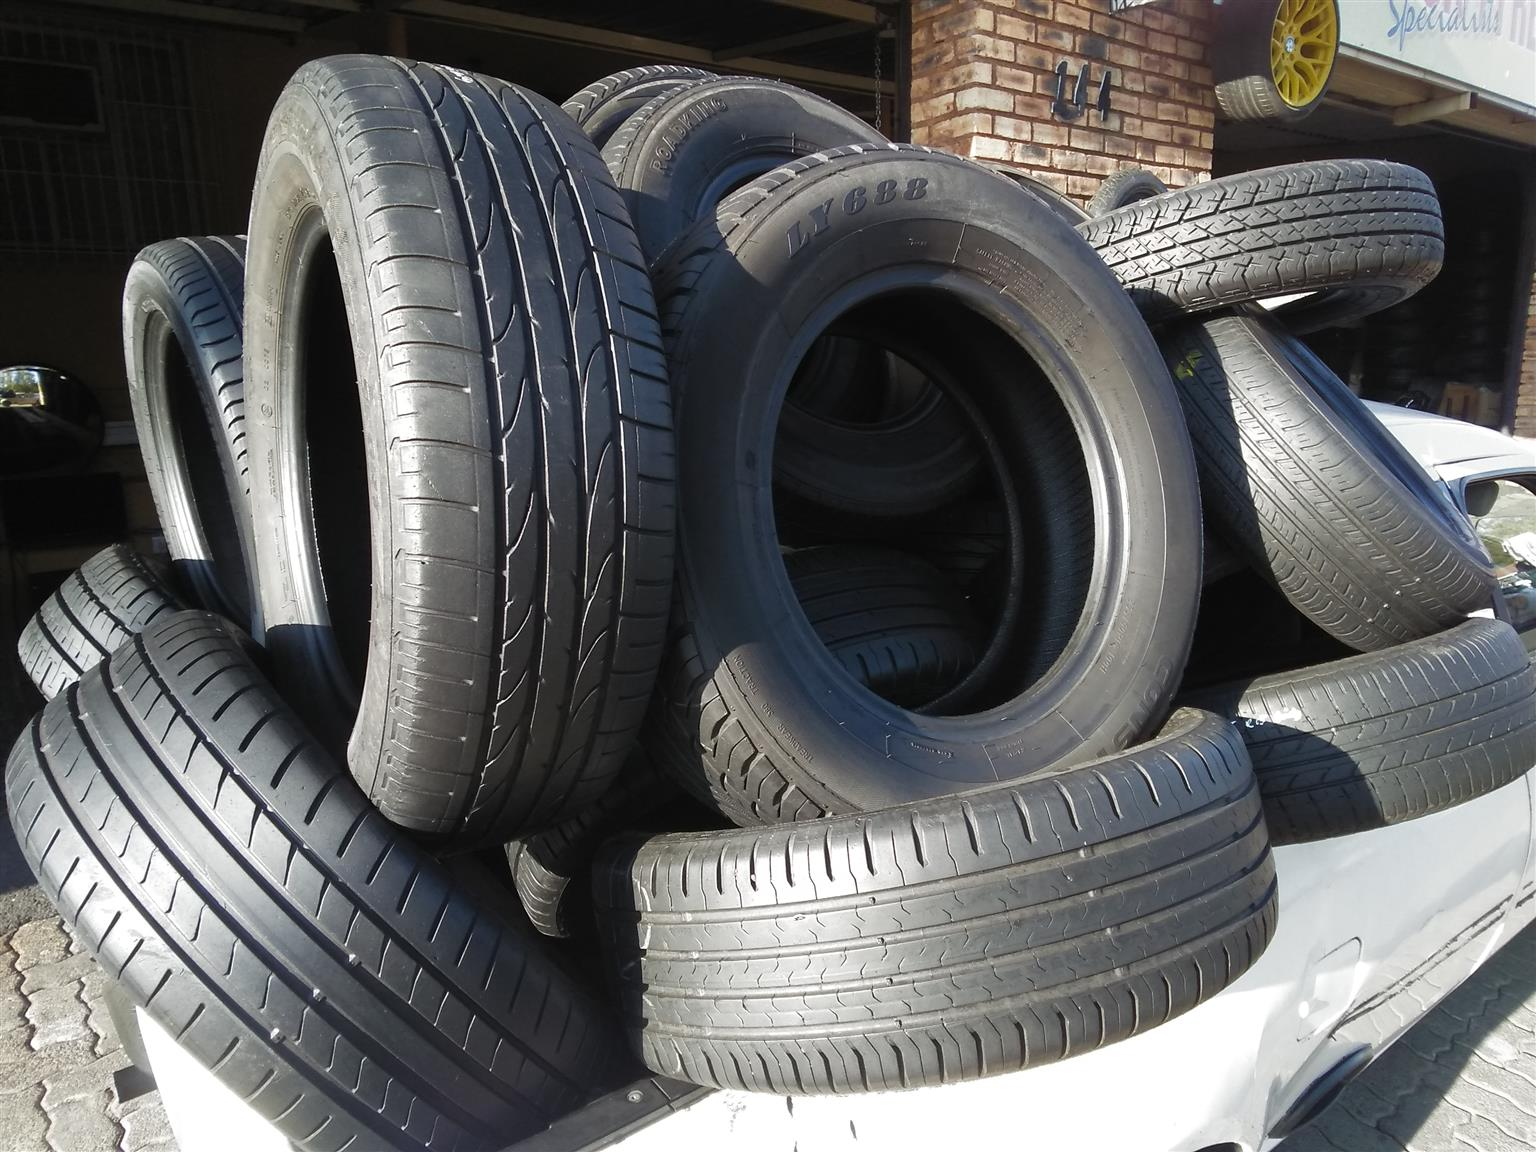 All Sizes of Quality Second Hand Run Flat and Normal Tyres Available for Sale.